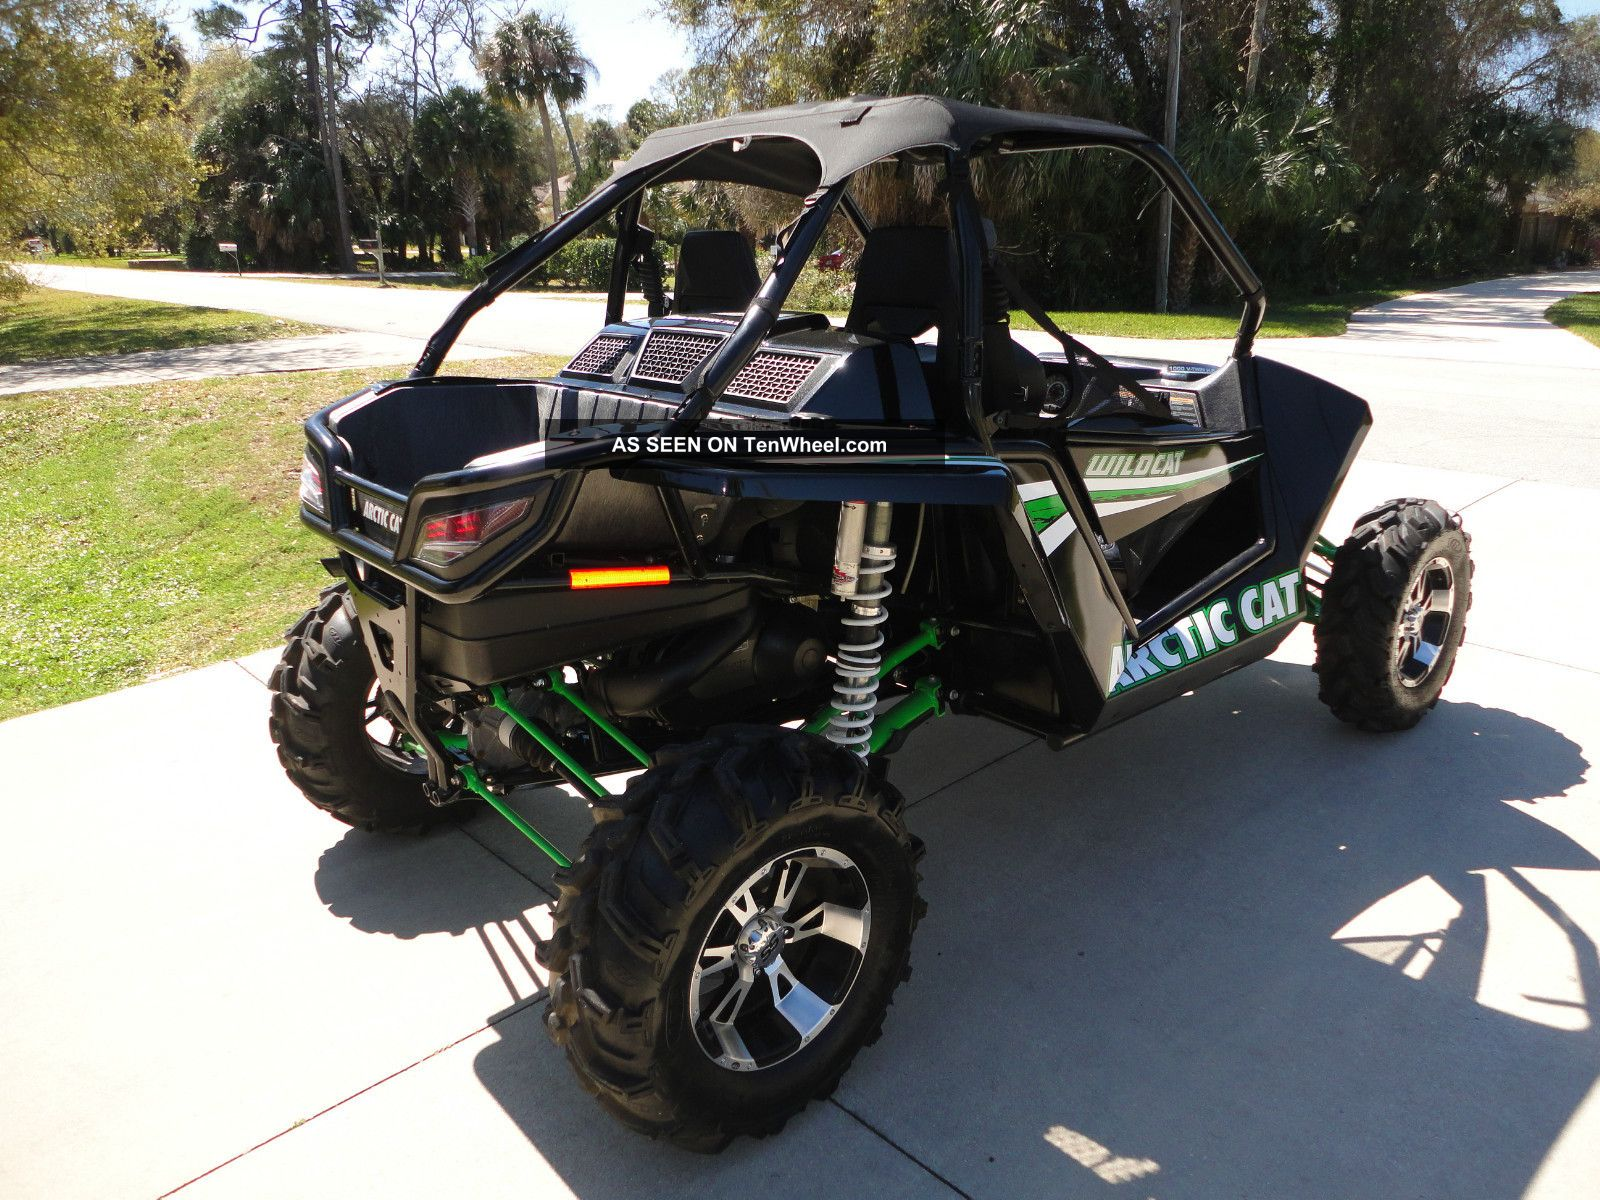 2015 En Xc 450 also 2017 En Mudpro 1000 Limited Eps additionally 331272899142 in addition 2016 Utility Utv Buyers Guide moreover New Arctic Cat Race Sled Announced. on arctic cat wildcat side by